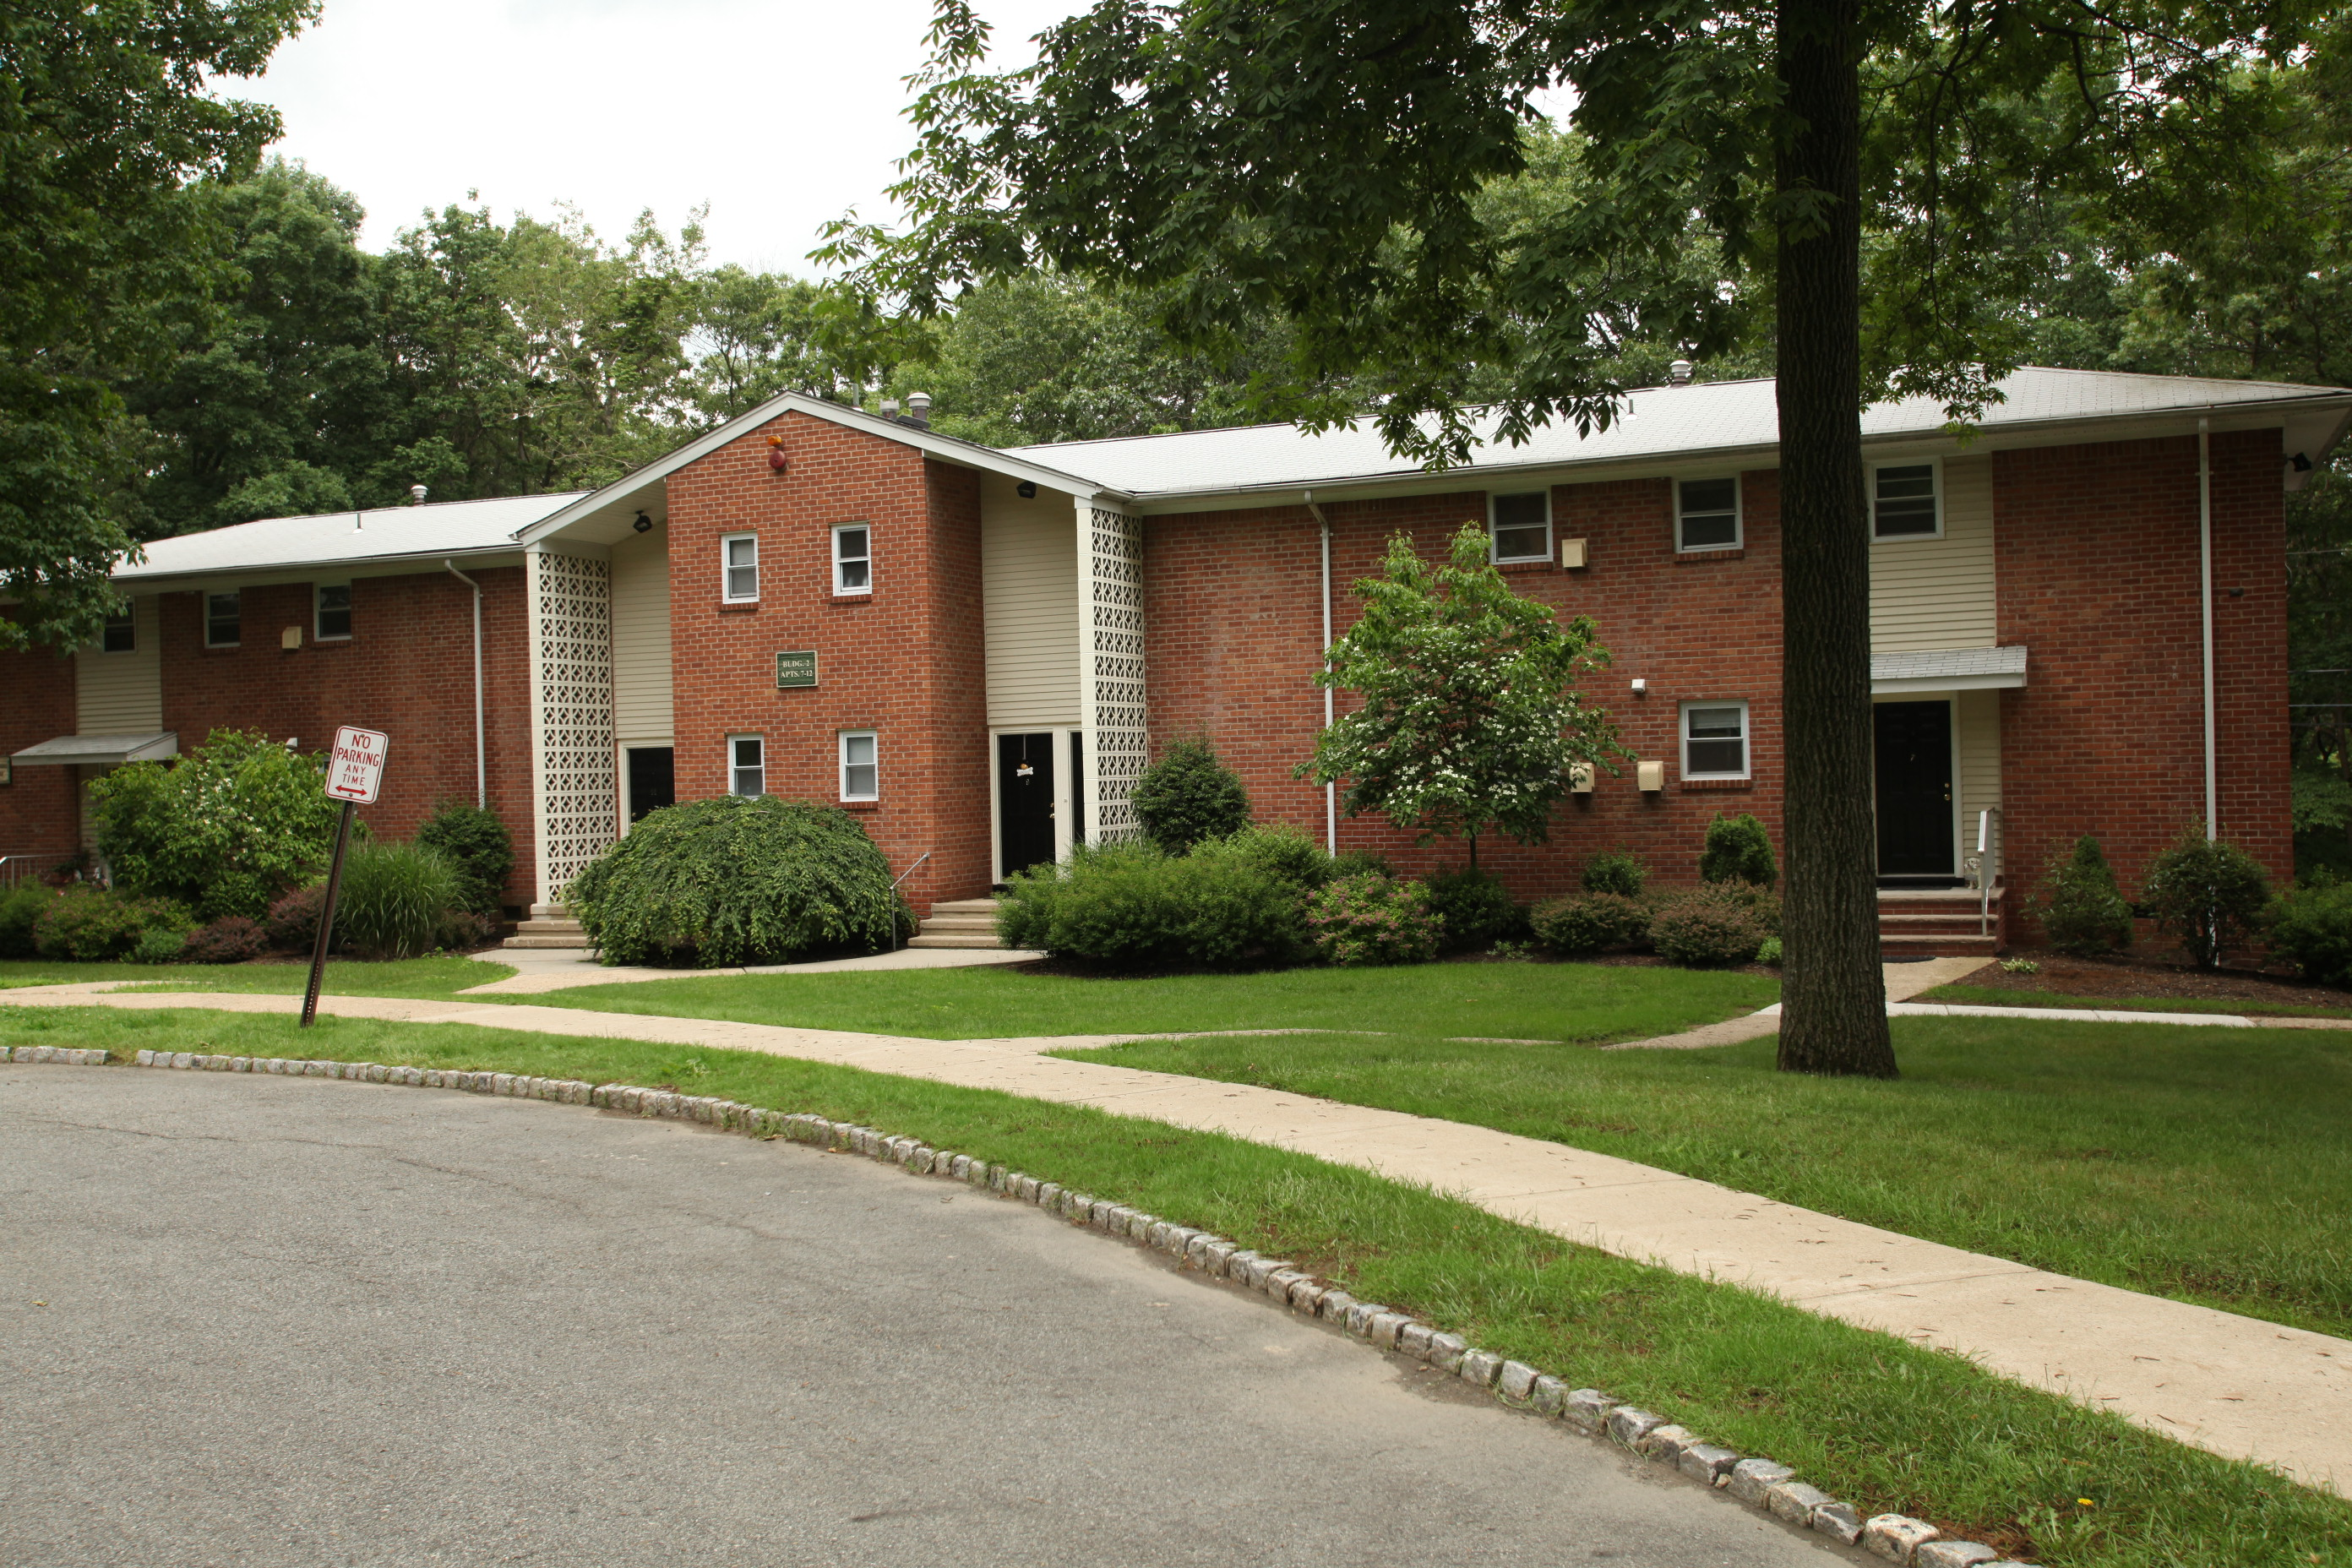 Apartments And Houses For Rent Near Me In Mount Arlington